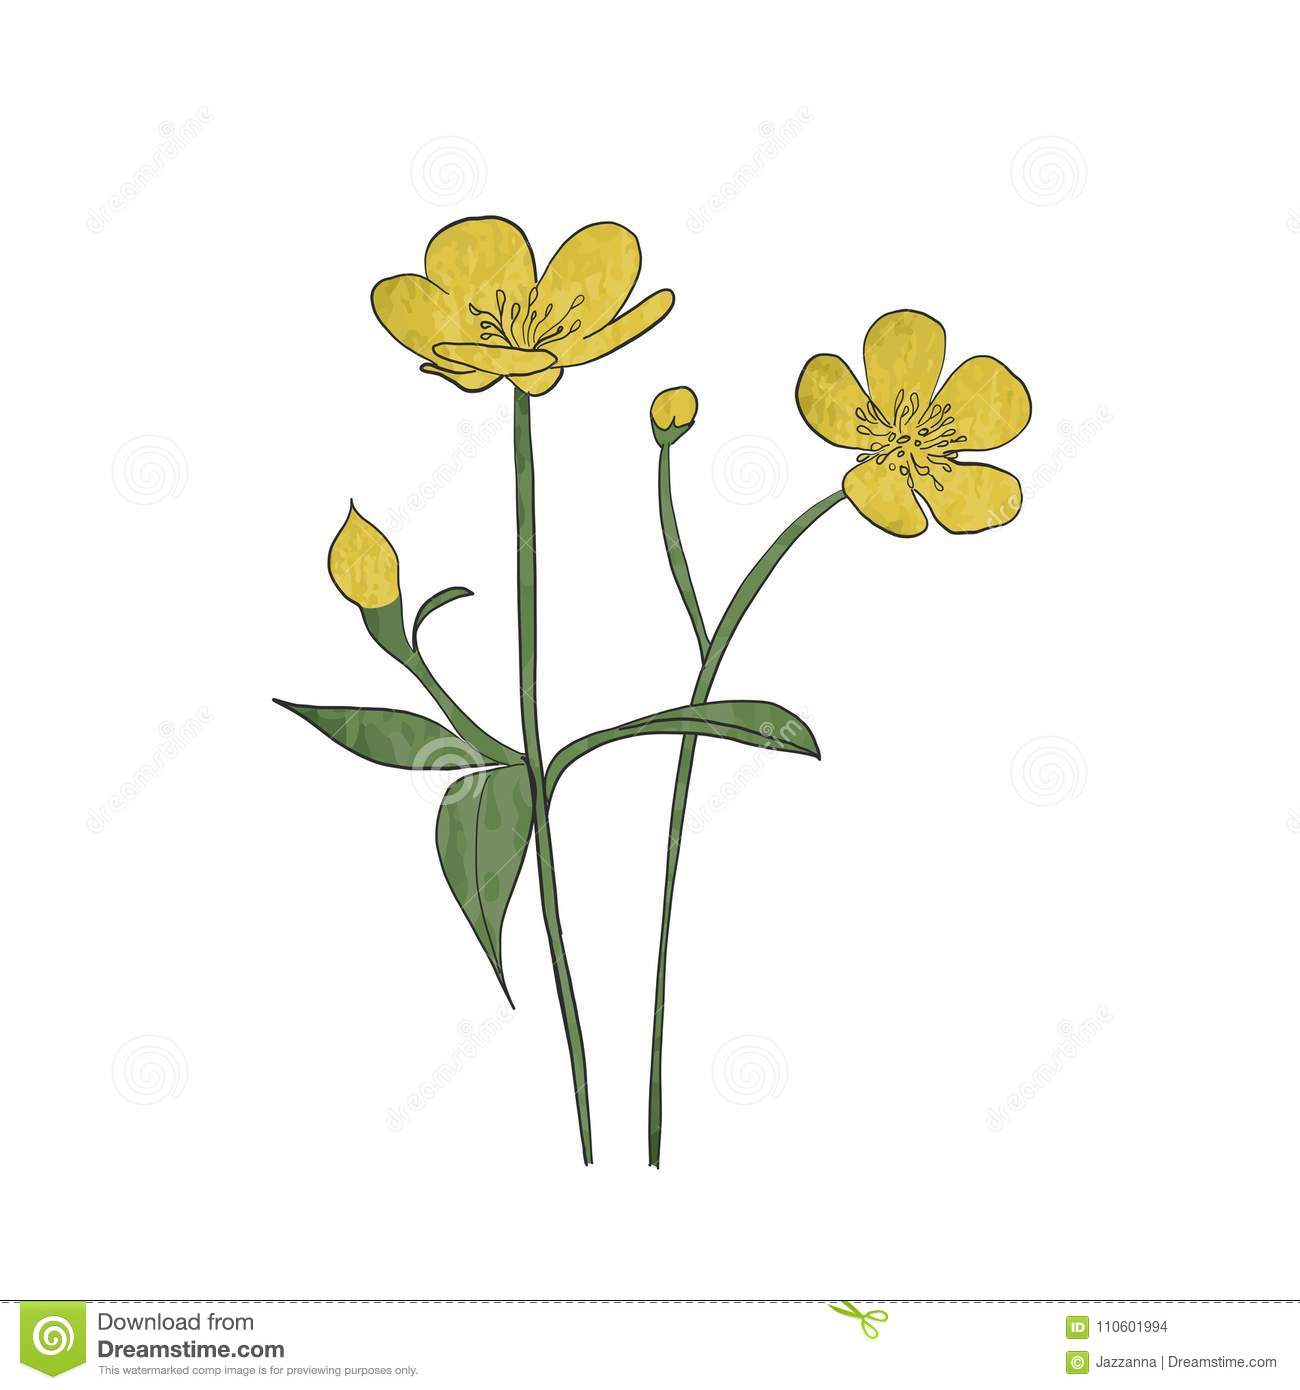 cac52c37de457 Hand Drawn Buttercup Flower Stock Vector - Illustration of botanical ...